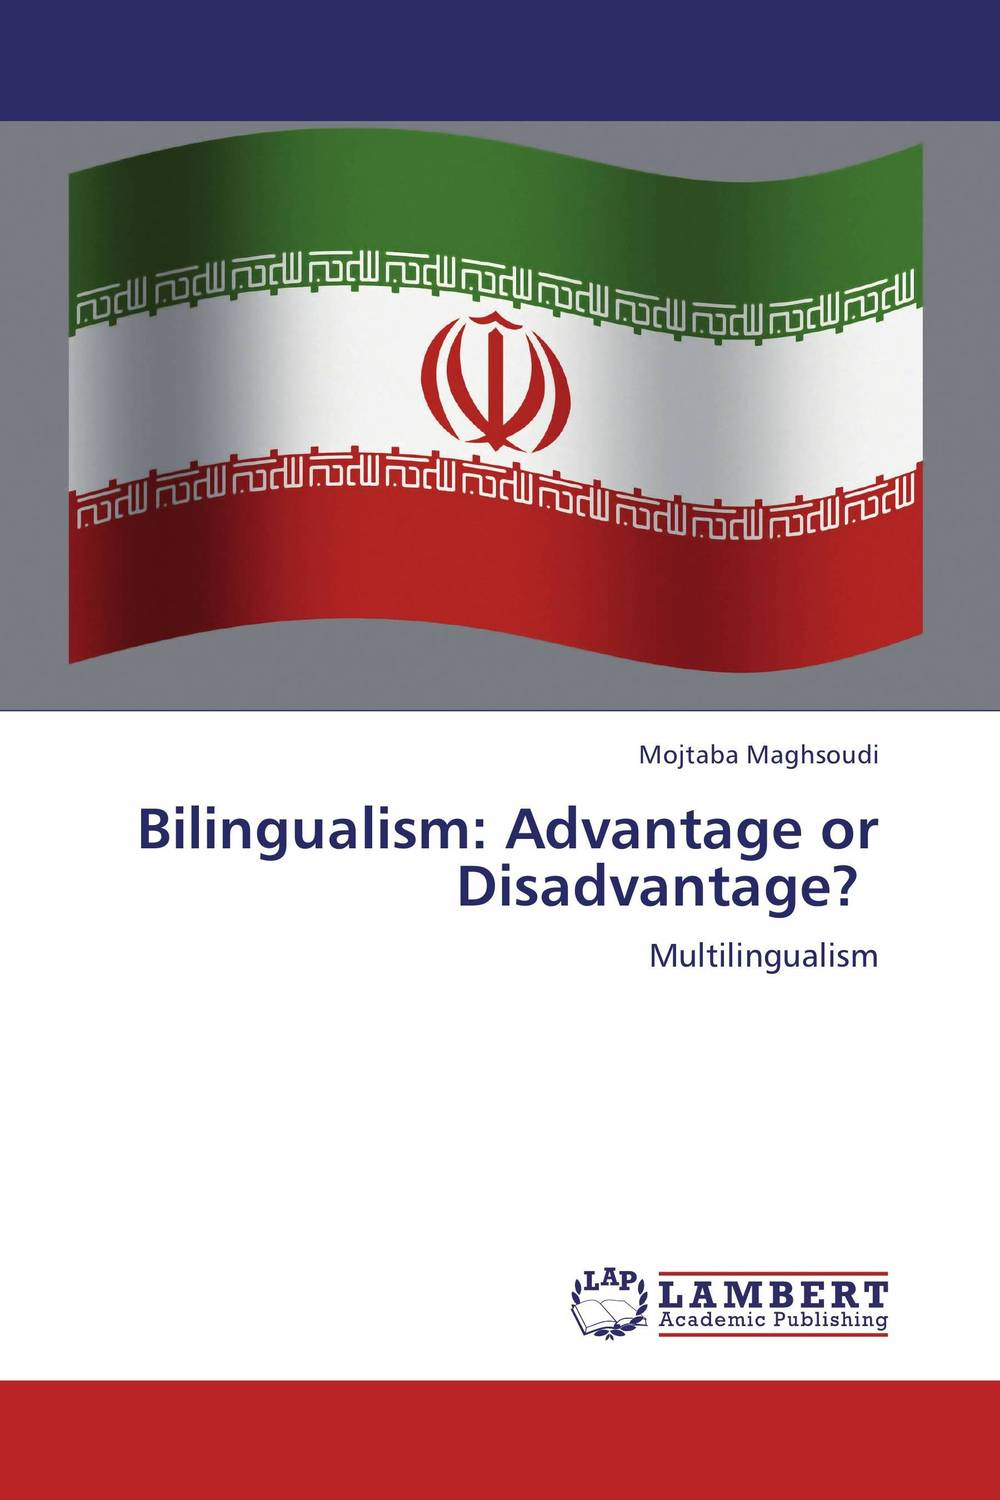 Bilingualism: Advantage or Disadvantage? who thought this was a good idea